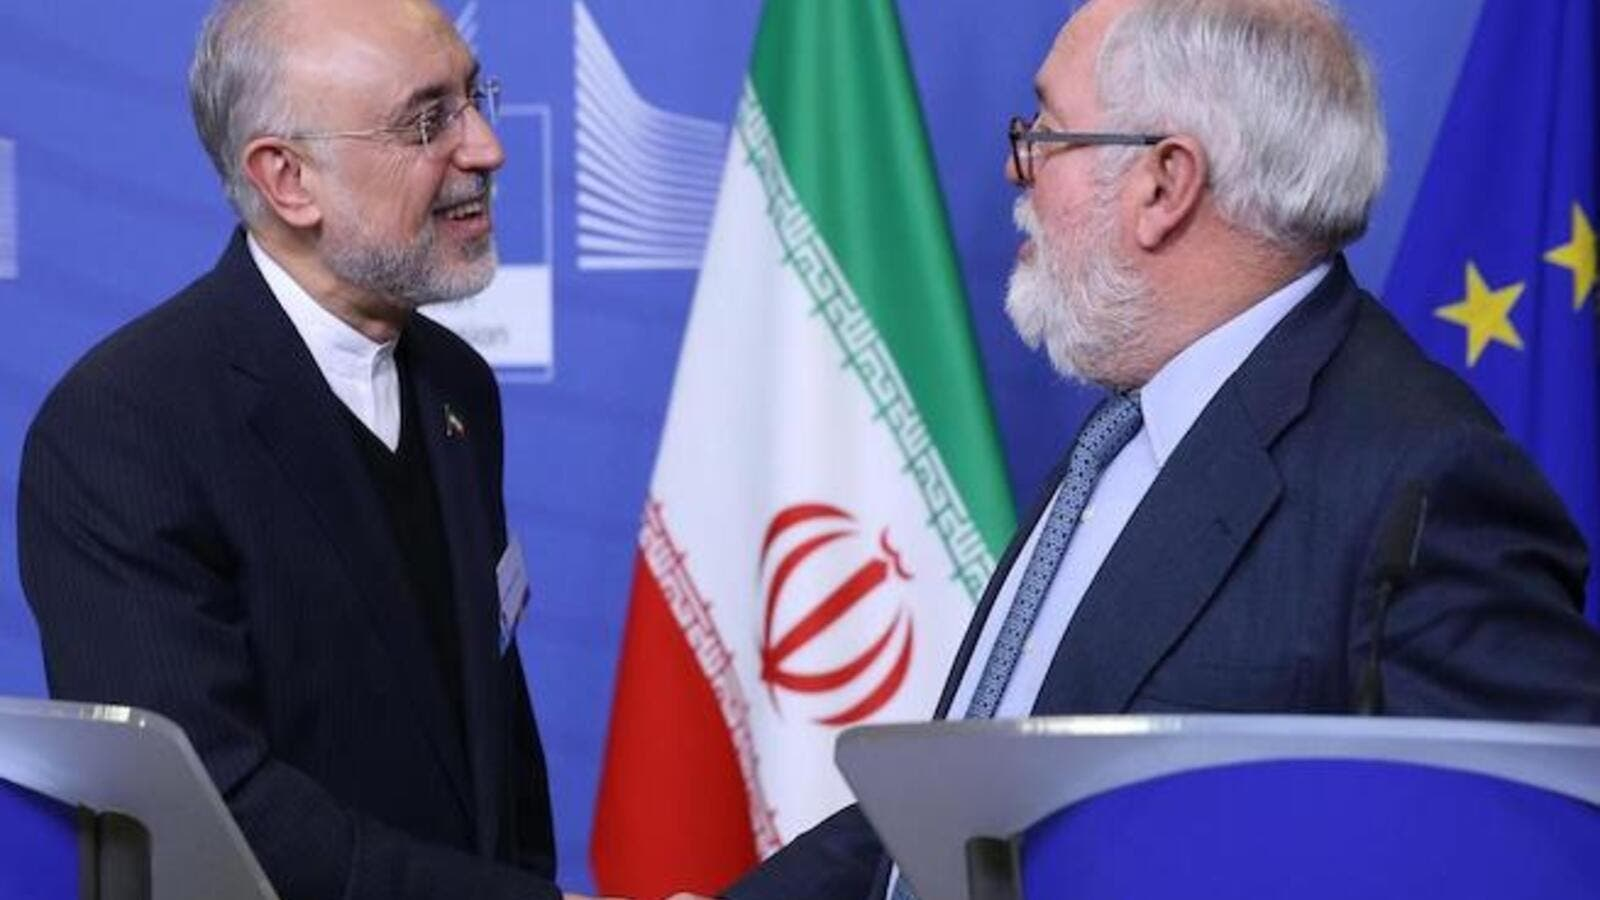 Miguel Arias Canete (R), Commissioner of the European Commission in charge of Climate Action and Energy, and Vice-President of the Islamic Republic of Iran and Head of the Atomic Energy Organisation of Iran (AEOI), Ali Akbar Salehi shake hands during a joint press point in Brussels on November 26, 2018. AFP